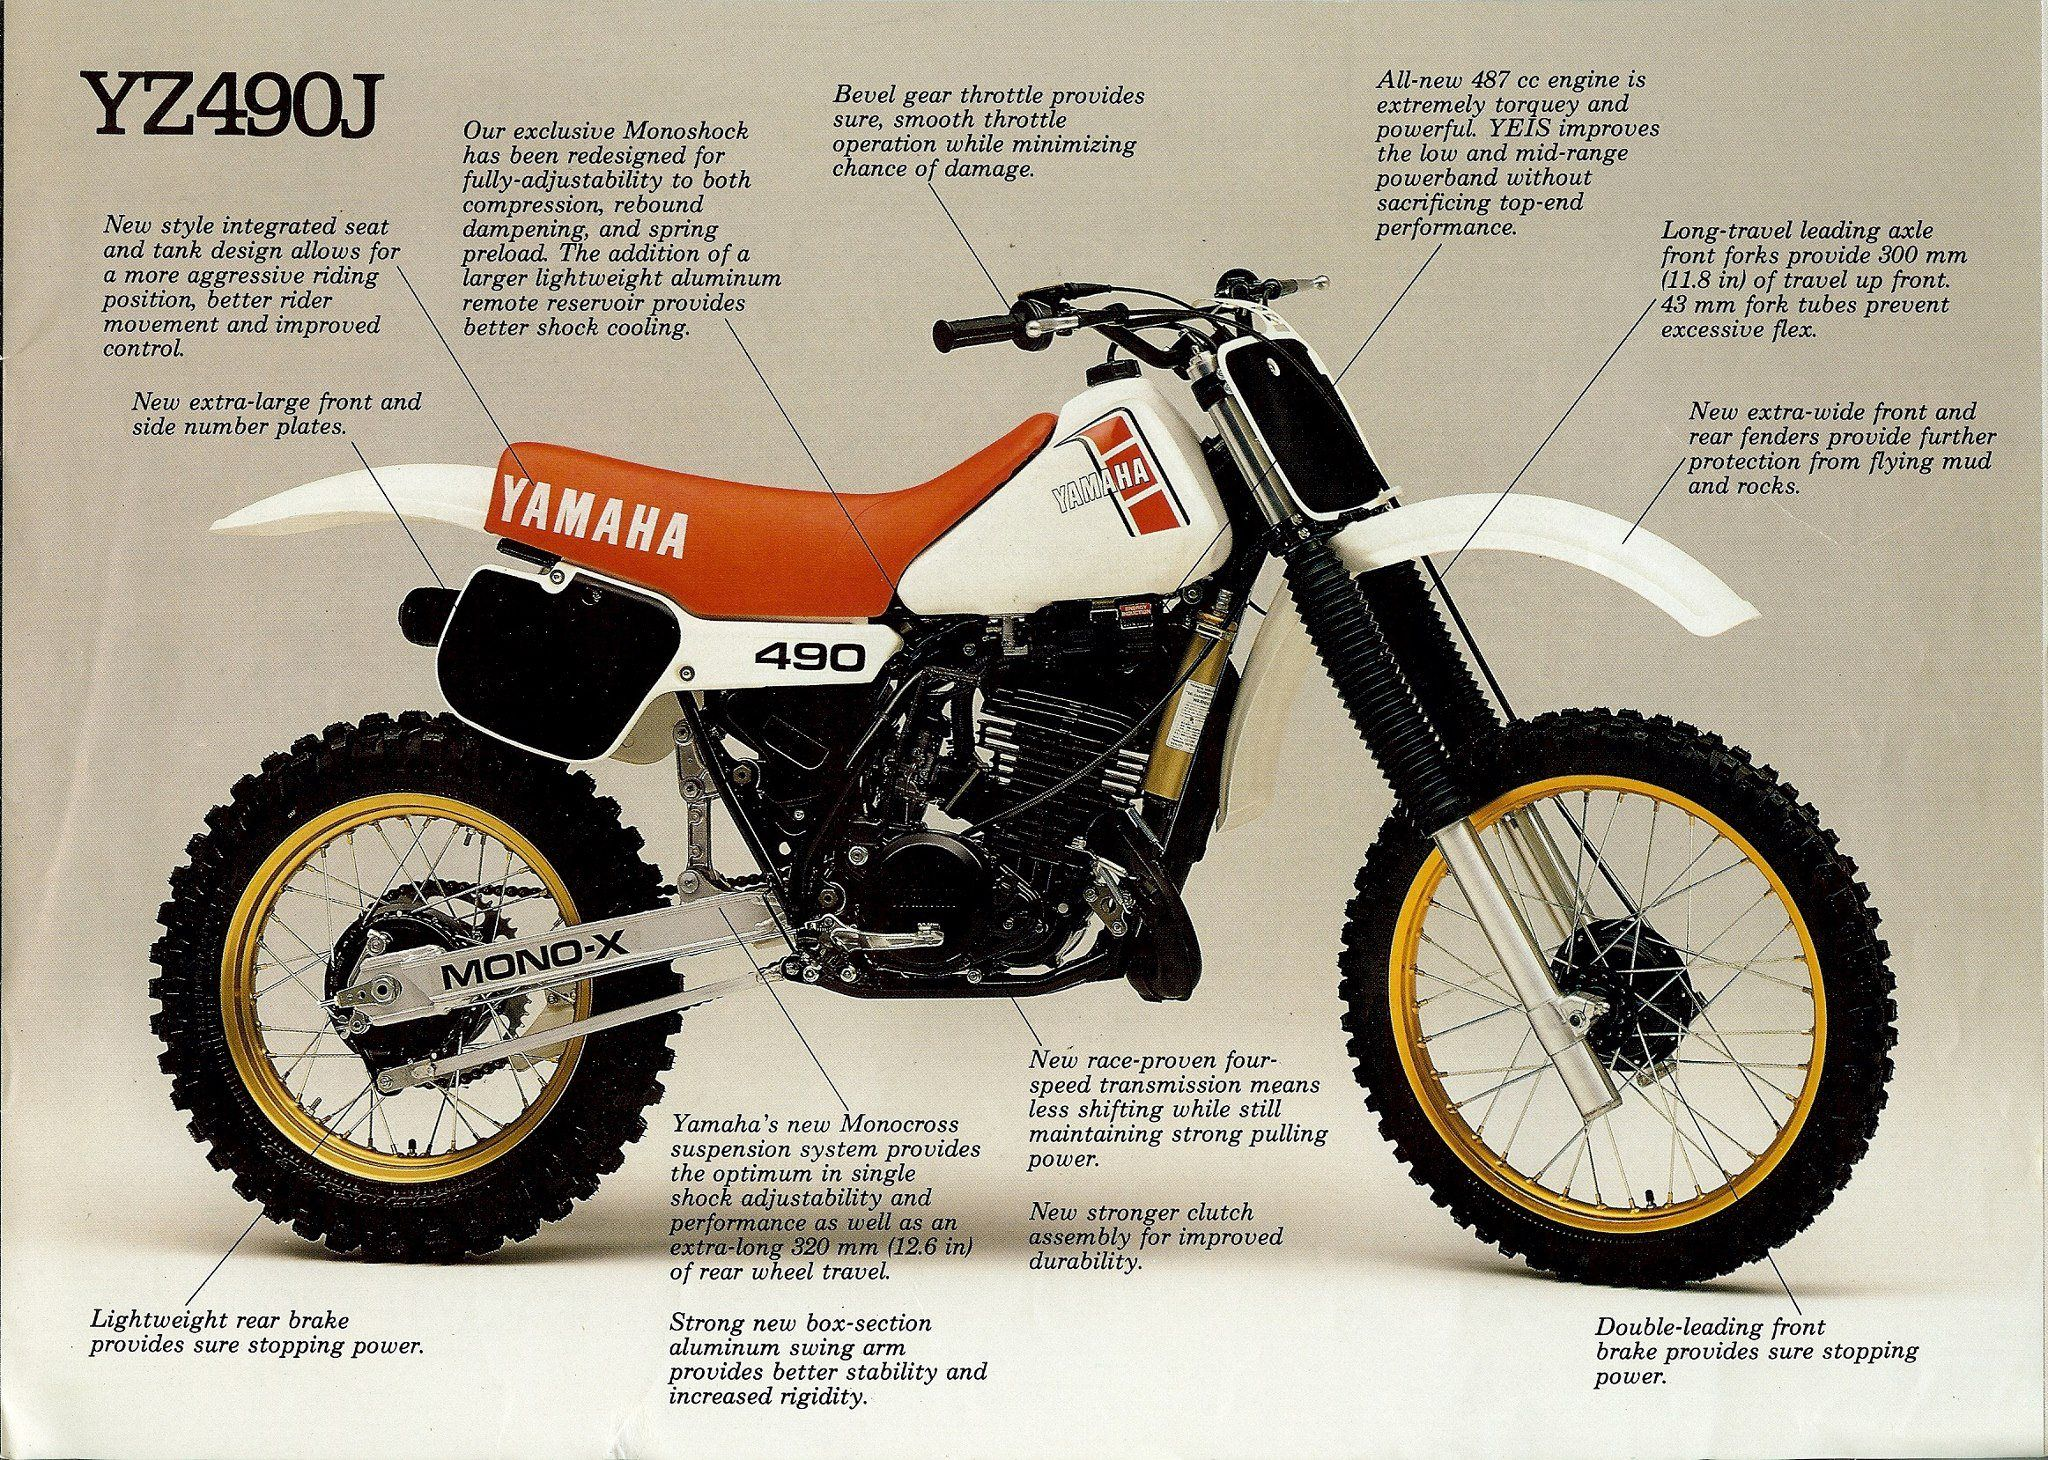 1982 yamaha yz490 european model vintage brochures. Black Bedroom Furniture Sets. Home Design Ideas